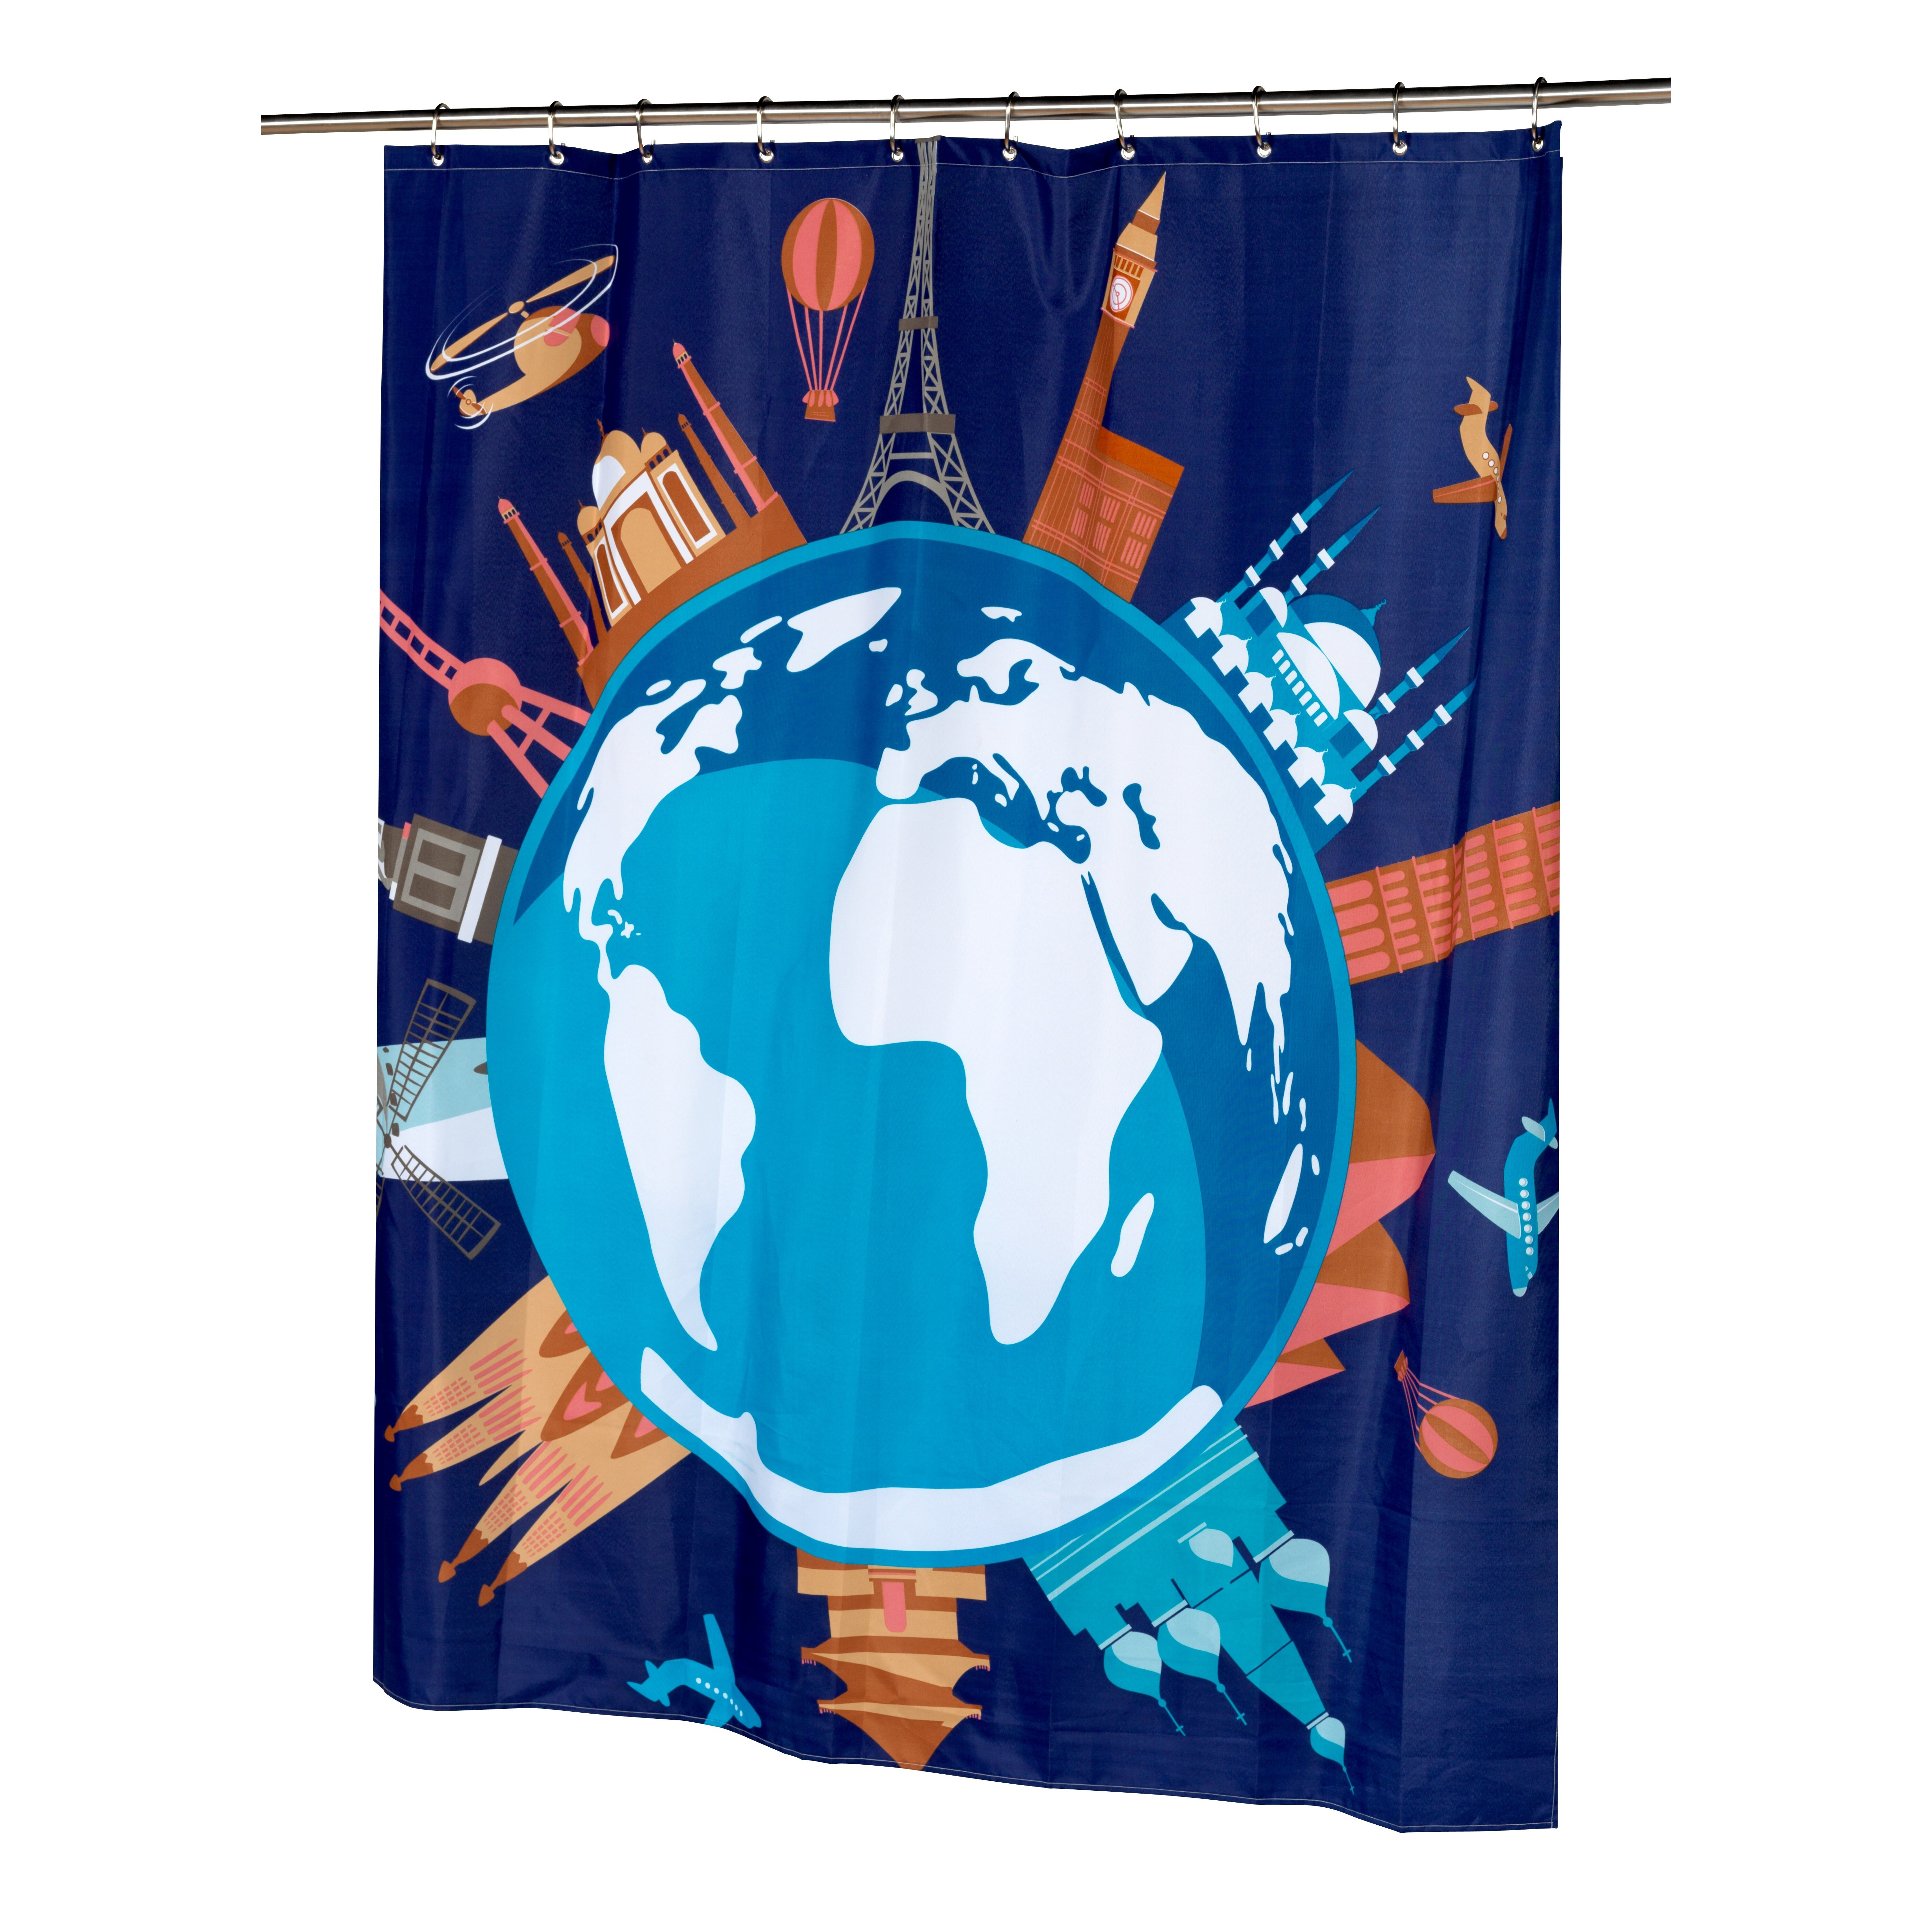 Shower Panels Lowes Sylve. Curved Shower Curtain Rod Lowes   Sylve net